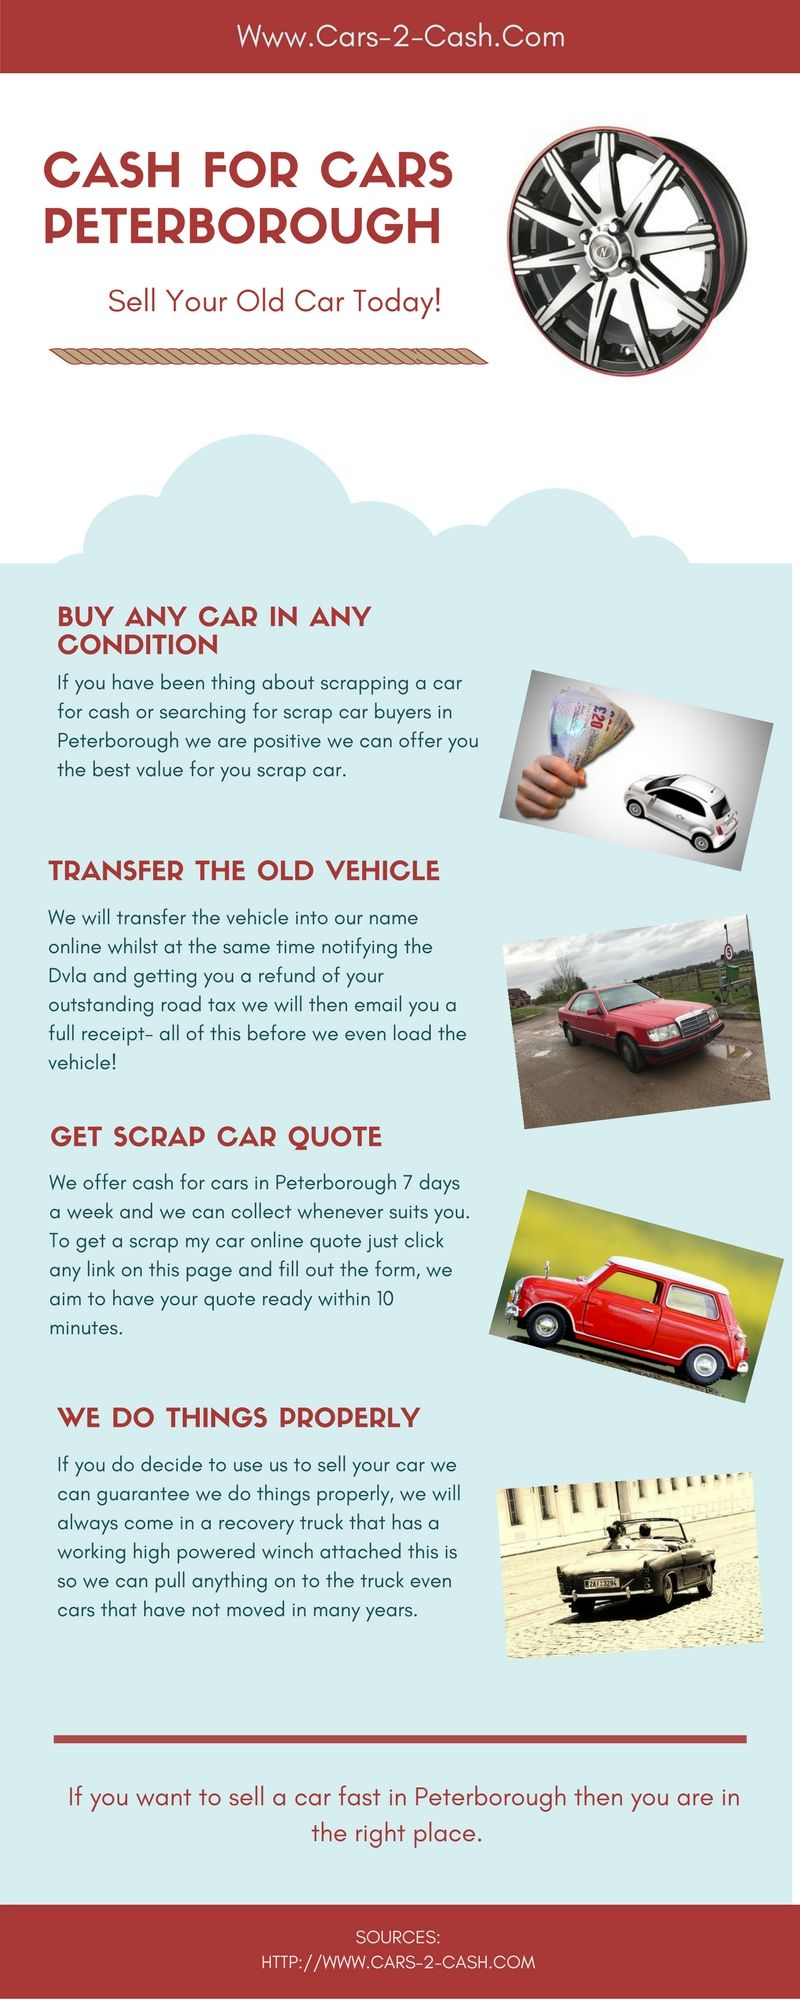 If you have been thing about scrapping a car for cash or searching ...